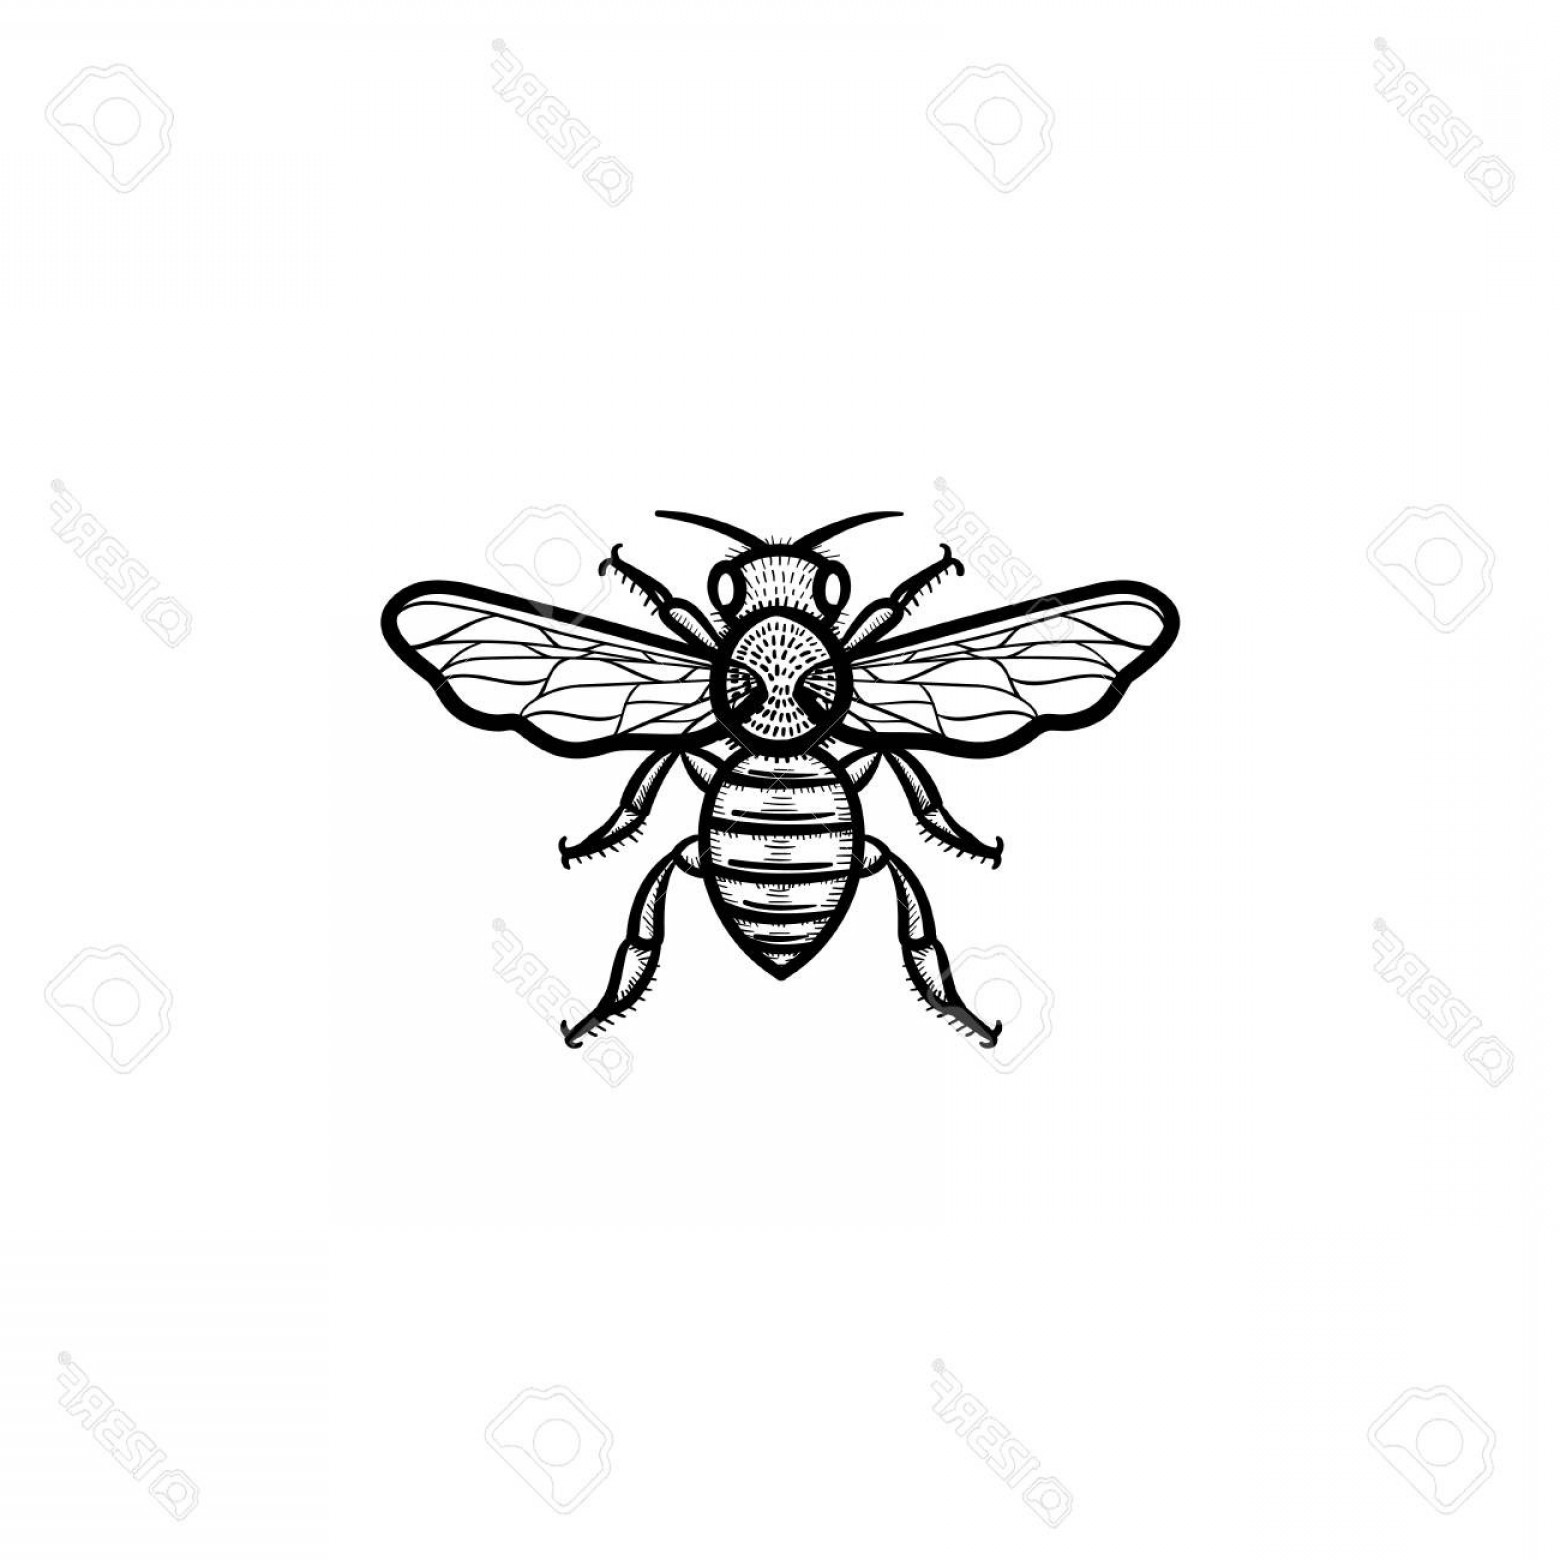 Bee Outline Vector: Simple Bee Icon Outline Vector With